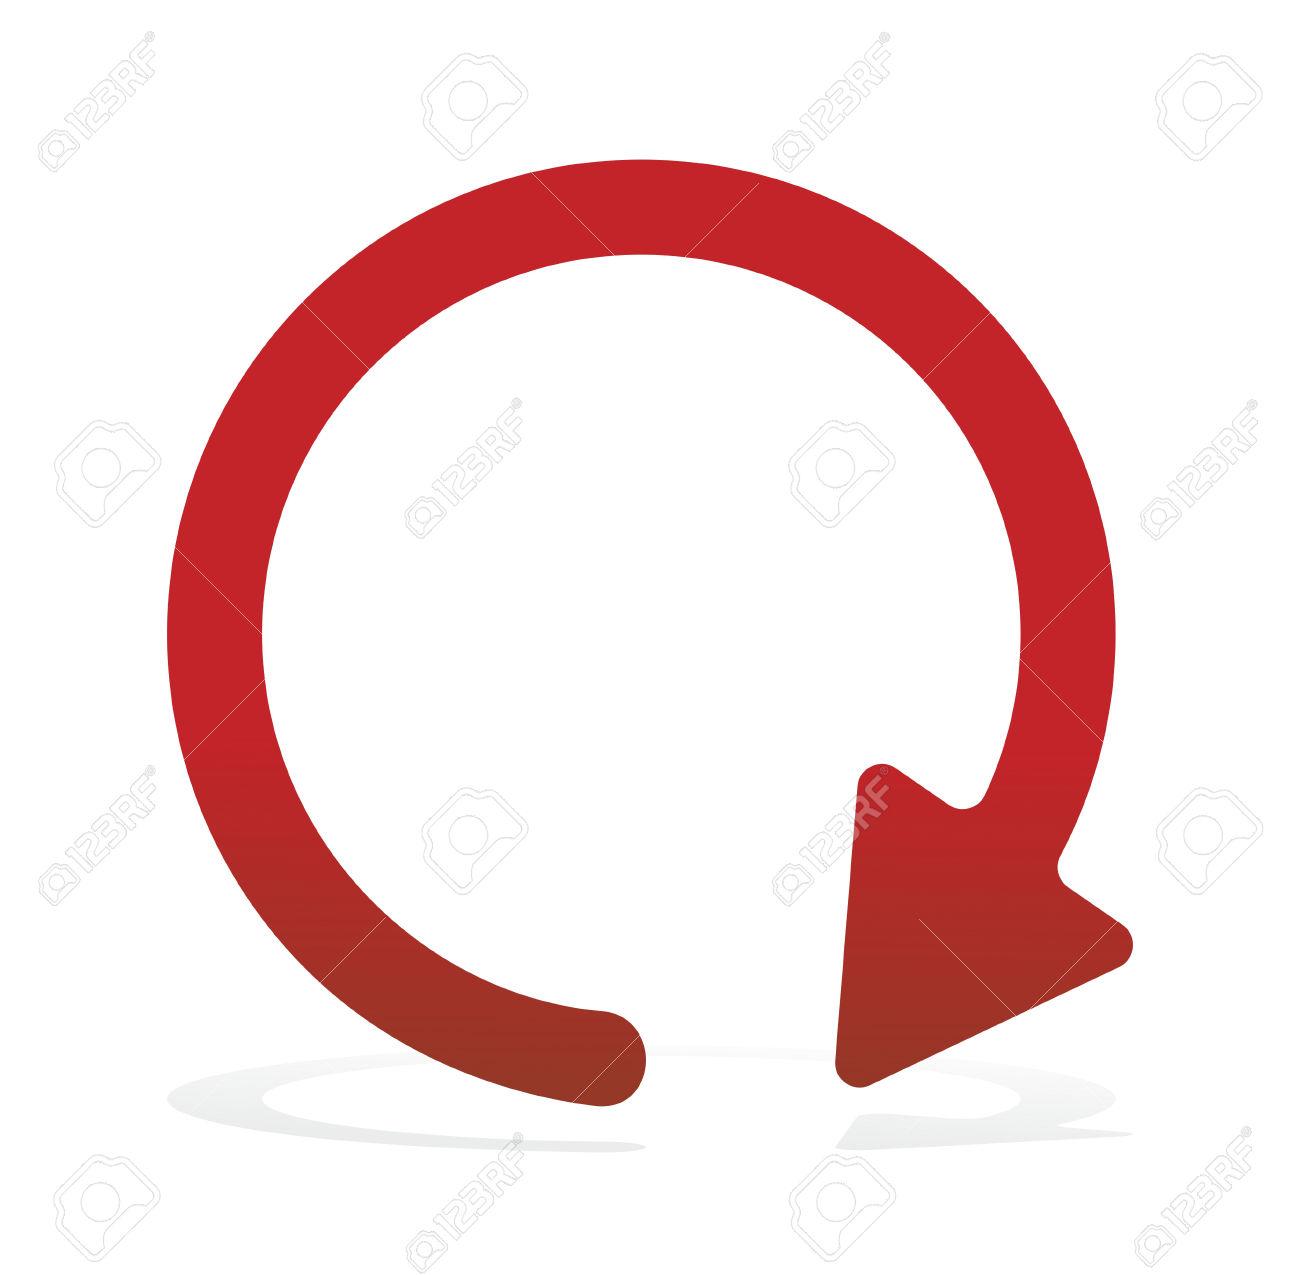 Red circle arrow clipart clip art royalty free stock Red, Circular Arrow Isolated On White Surface Stock Photo, Picture ... clip art royalty free stock